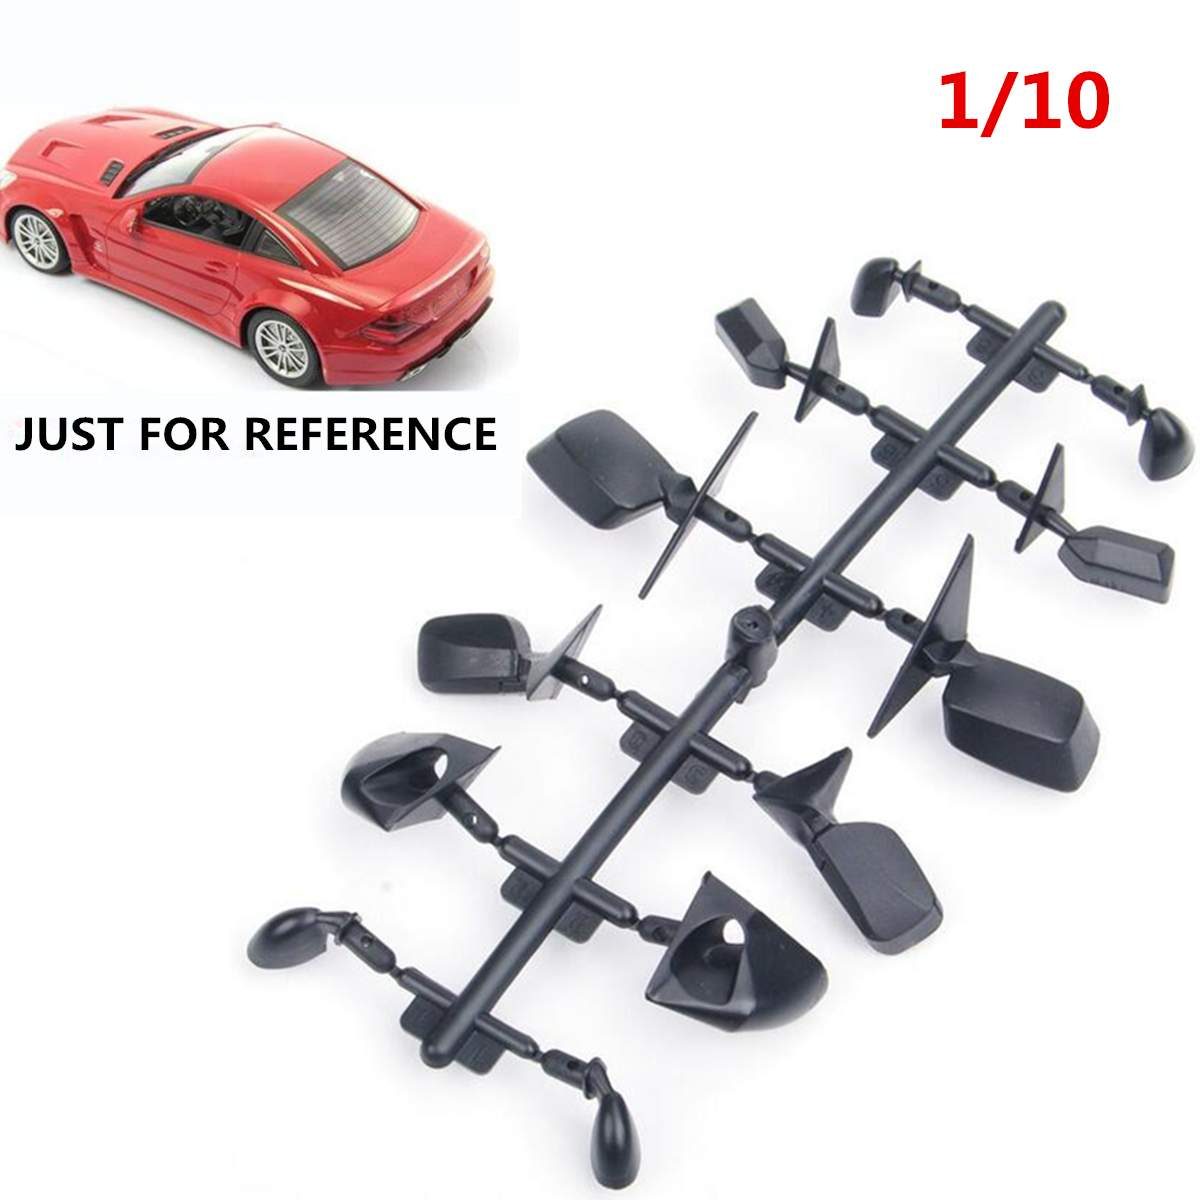 6 mirror rear view set HSP 00369BK black bodyshell body side rear mirror set fit for 1:10 RC on road car assembly parts Parts & Accessories    - AliExpress